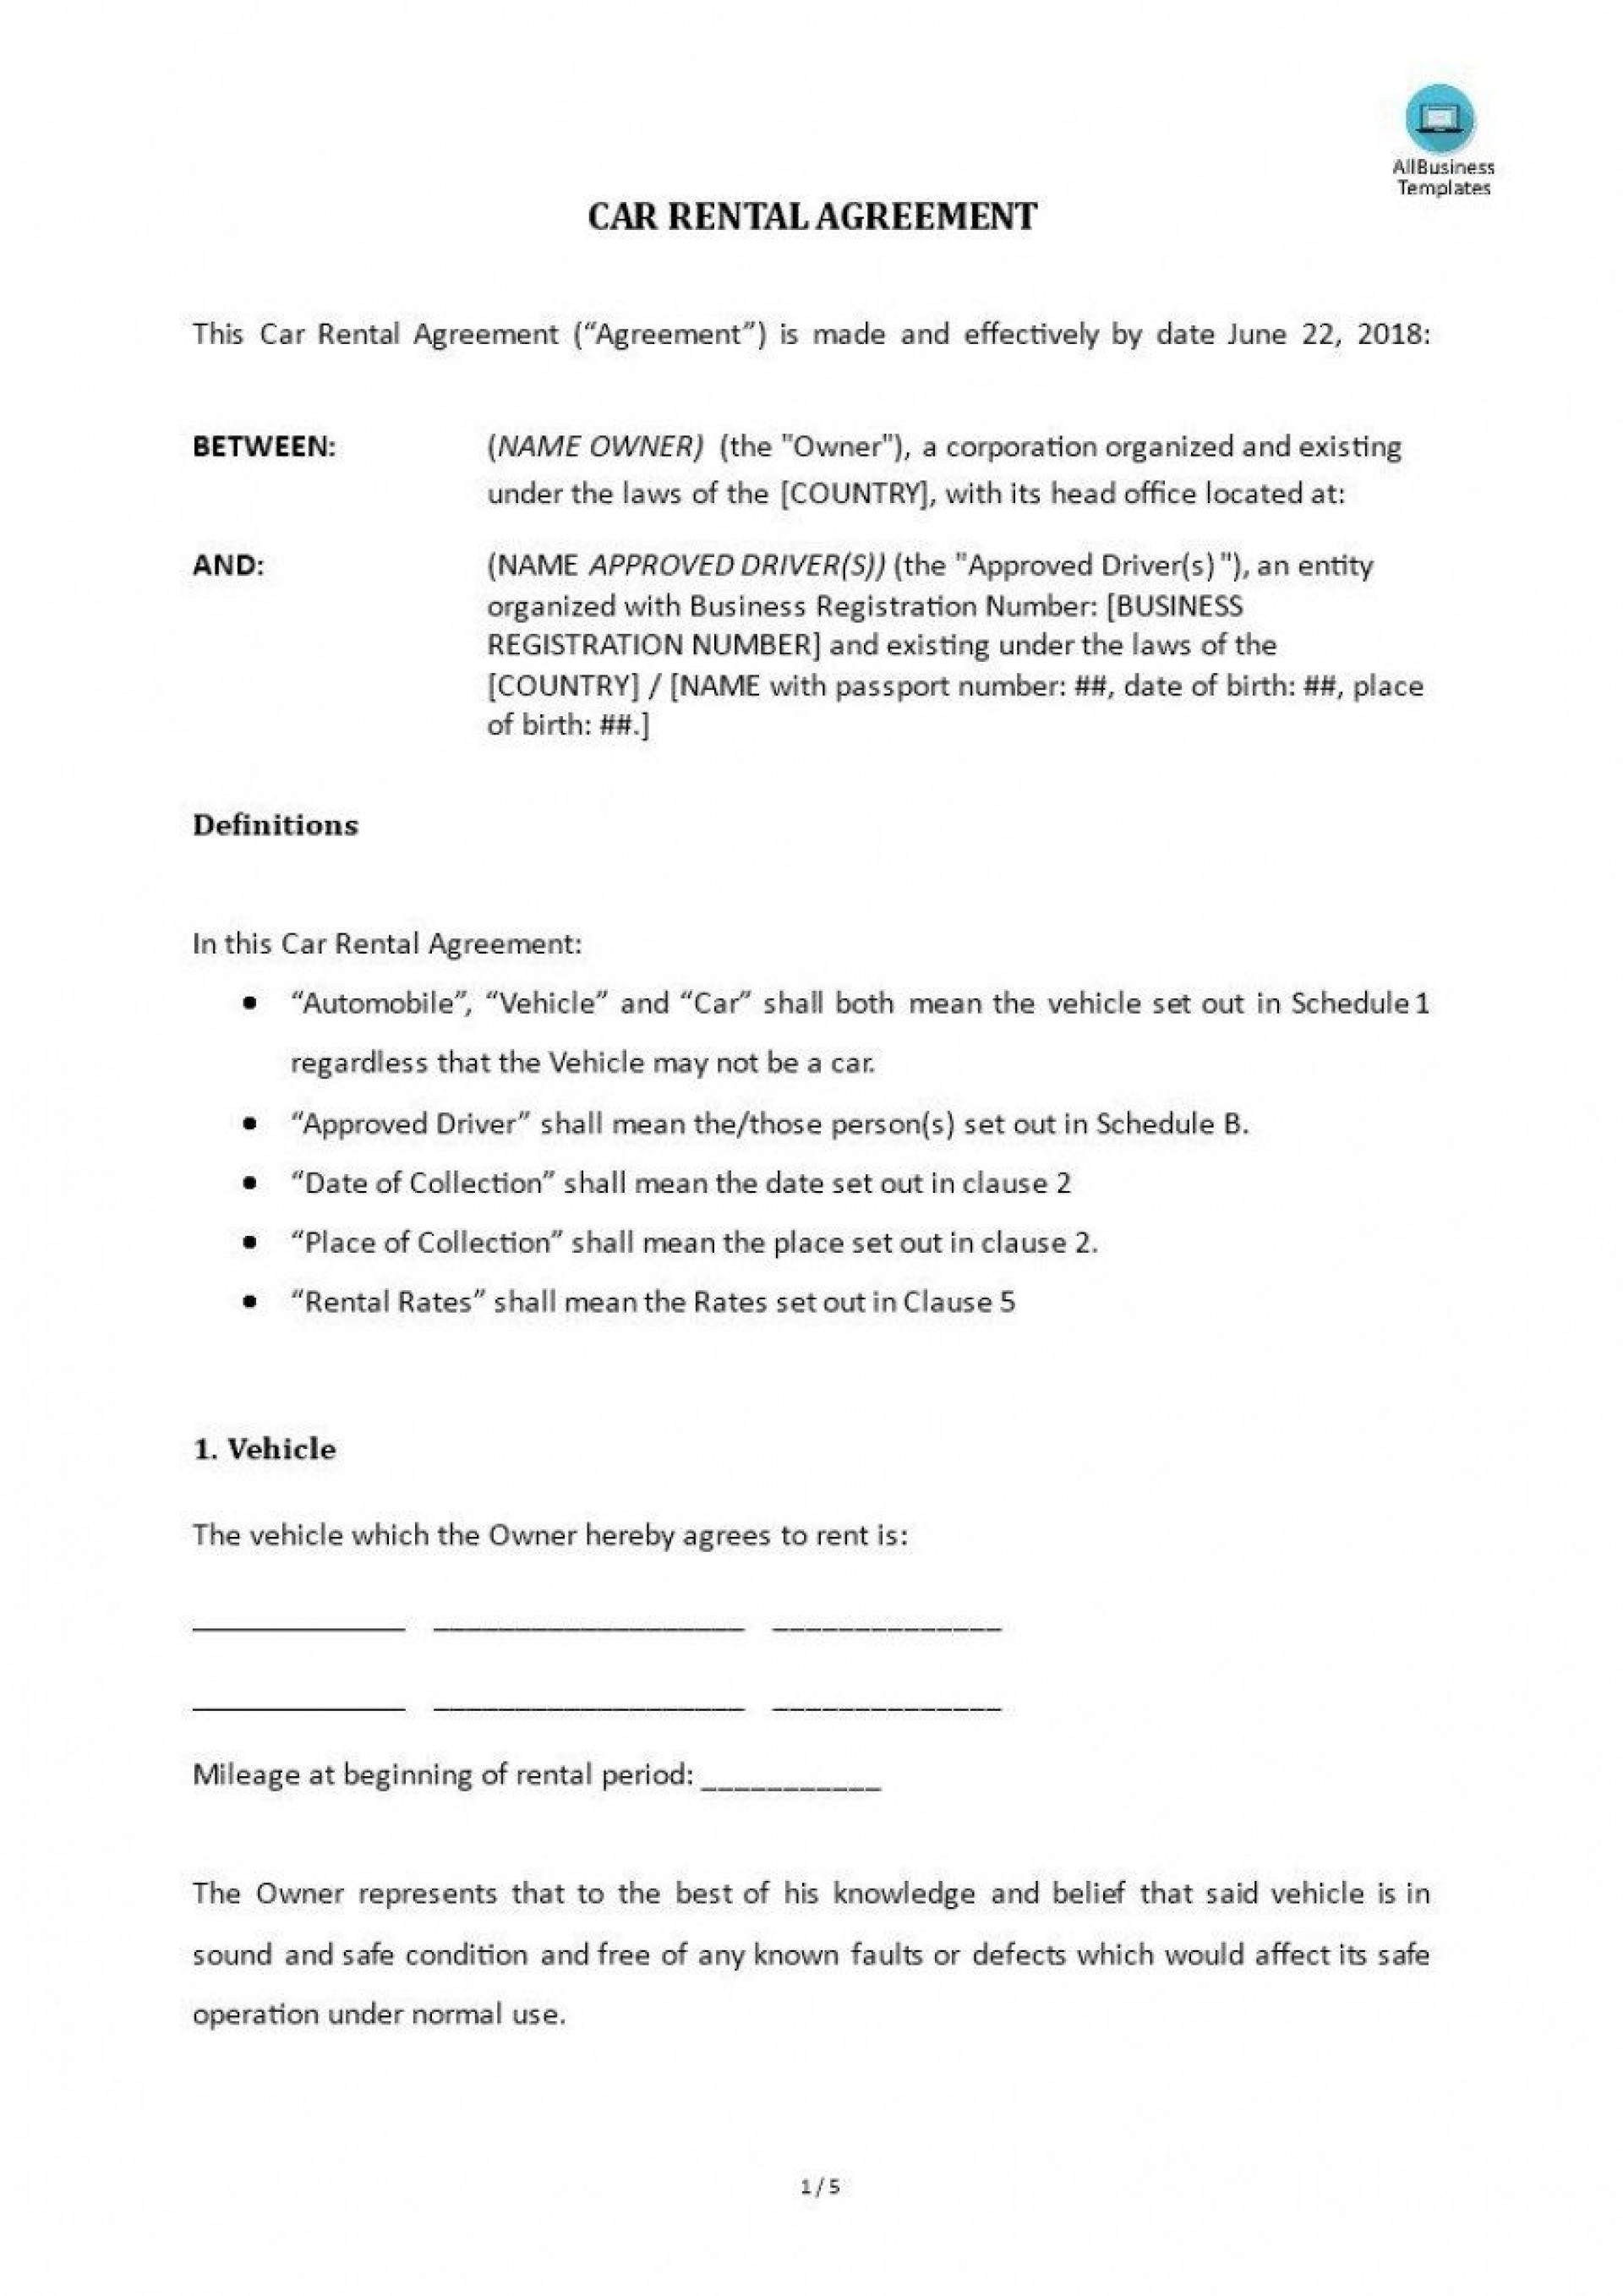 006 Impressive Template For Car Hire Agreement Highest Clarity 1920